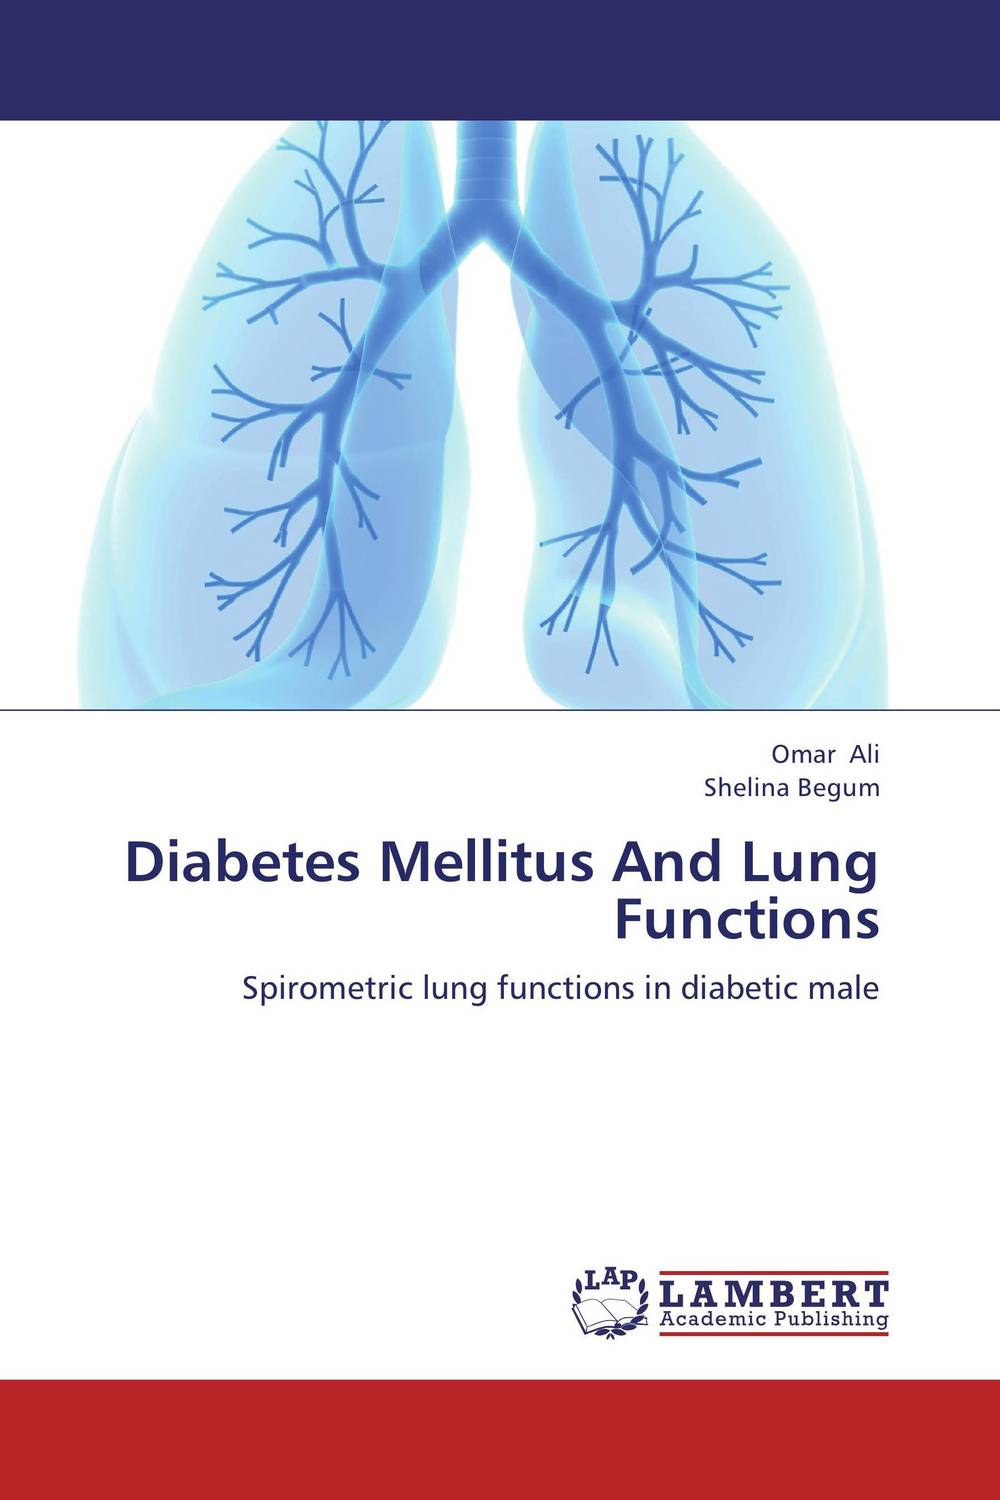 Diabetes Mellitus And Lung Functions sharad leve rakesh verma and rakesh kumar dixit role of irbesartan and curcumin in type 2 diabetes mellitus